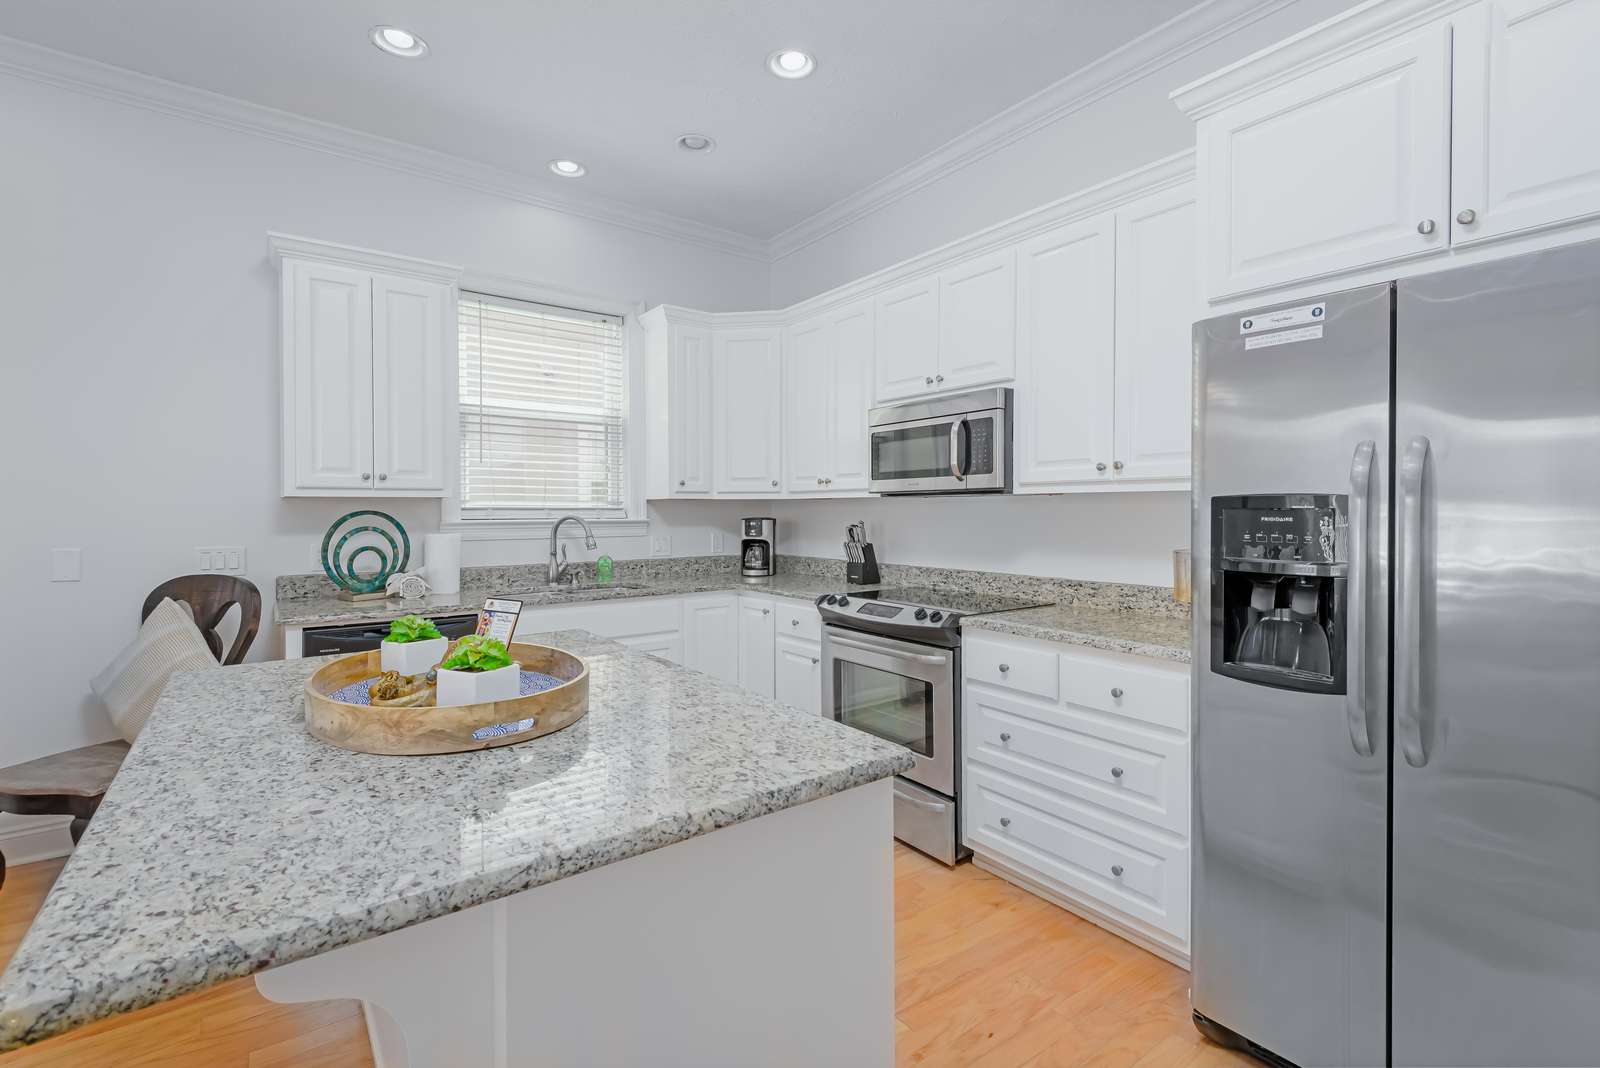 Great layout for making some afternoon snacks!